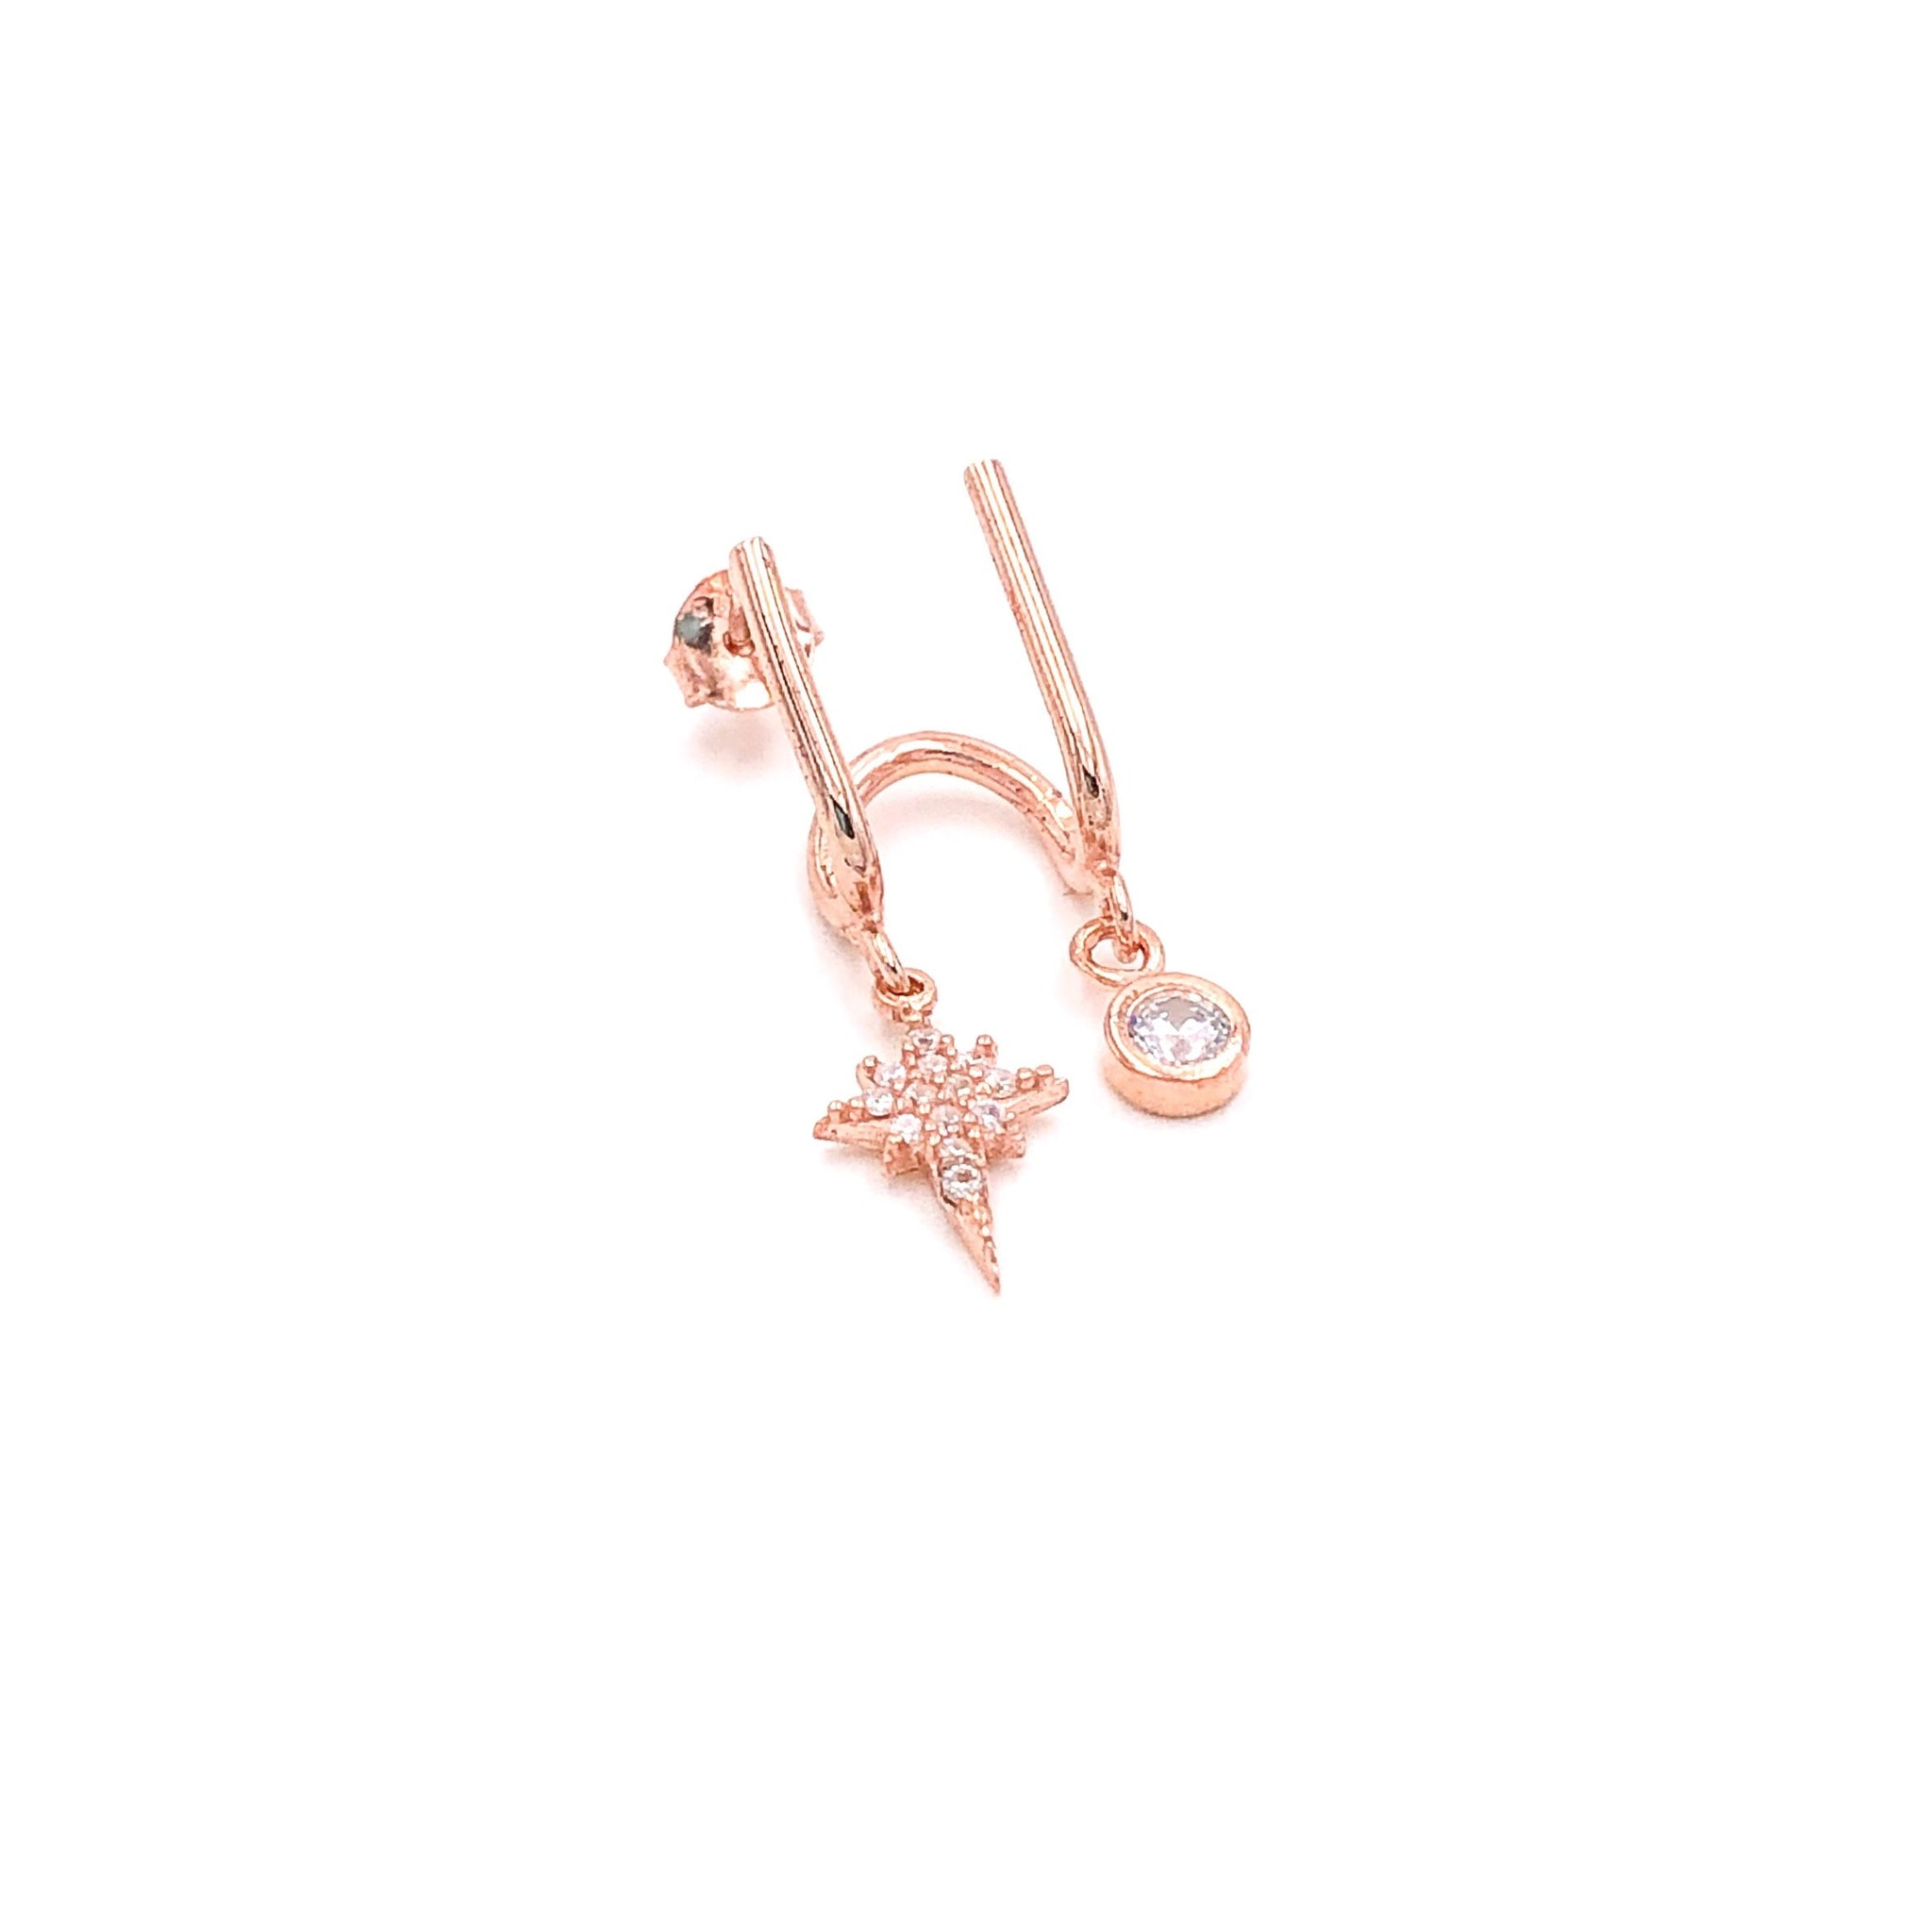 North Star Solitaire Double Earring